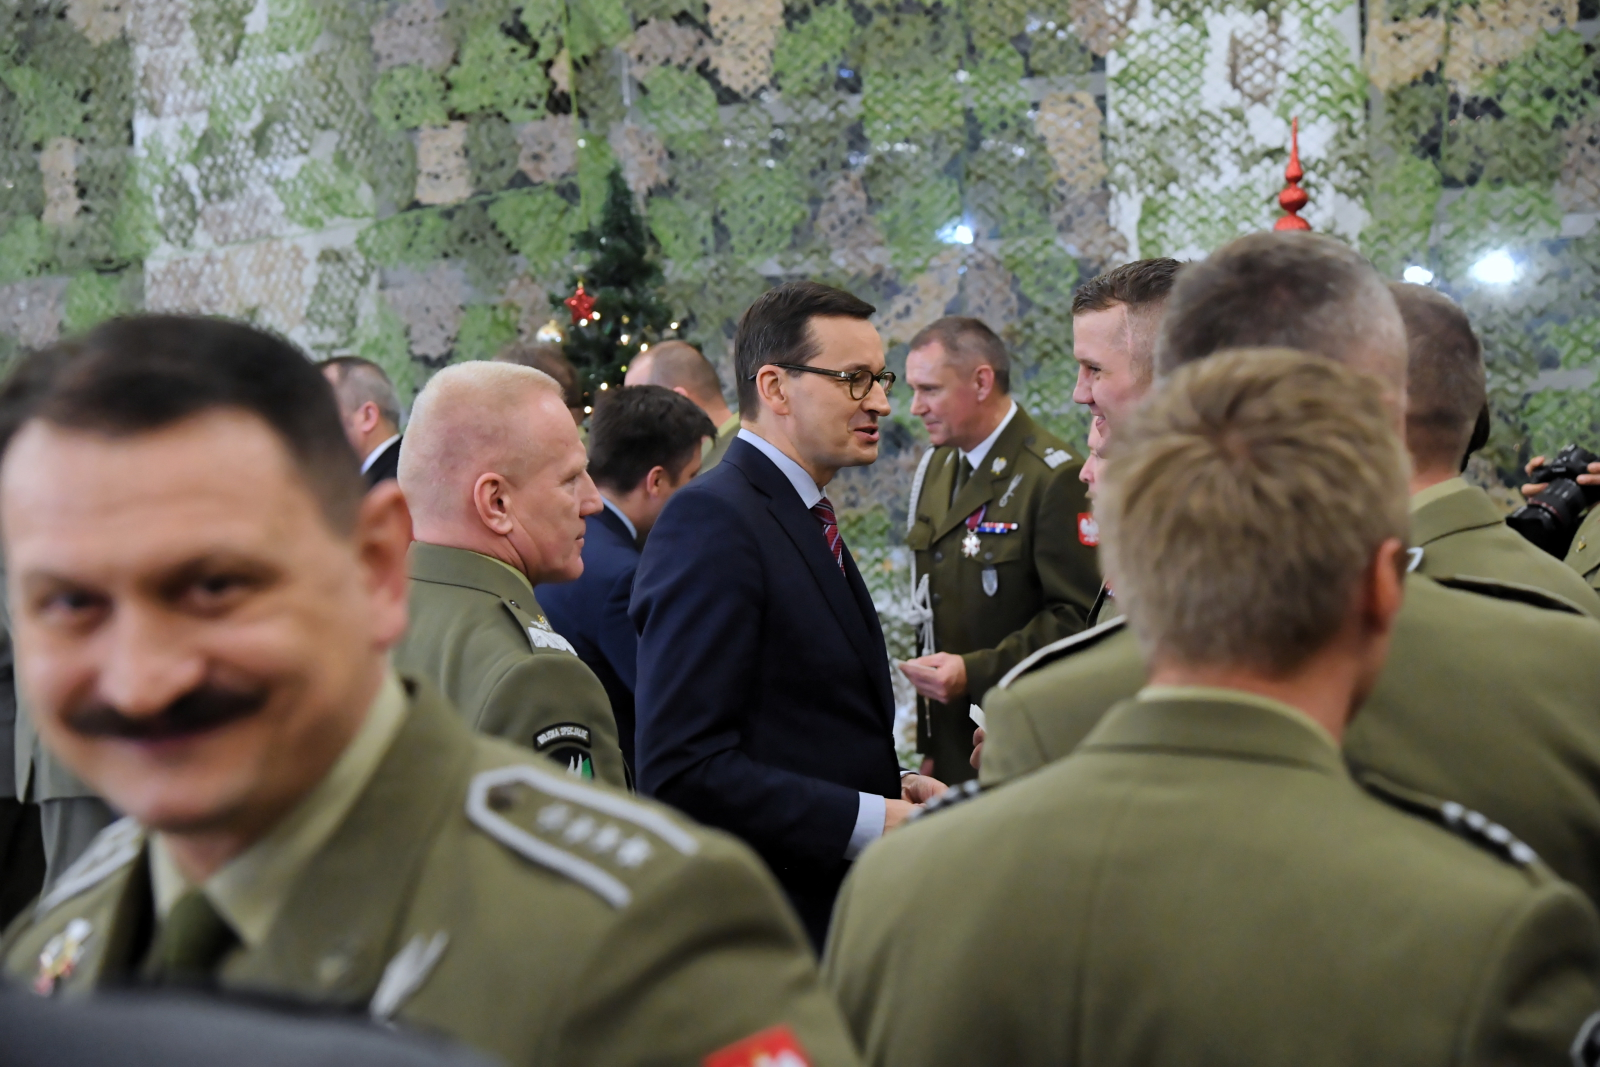 Polish Prime Minister Mateusz Morawiecki during a meeting with soldiers in Kraków.